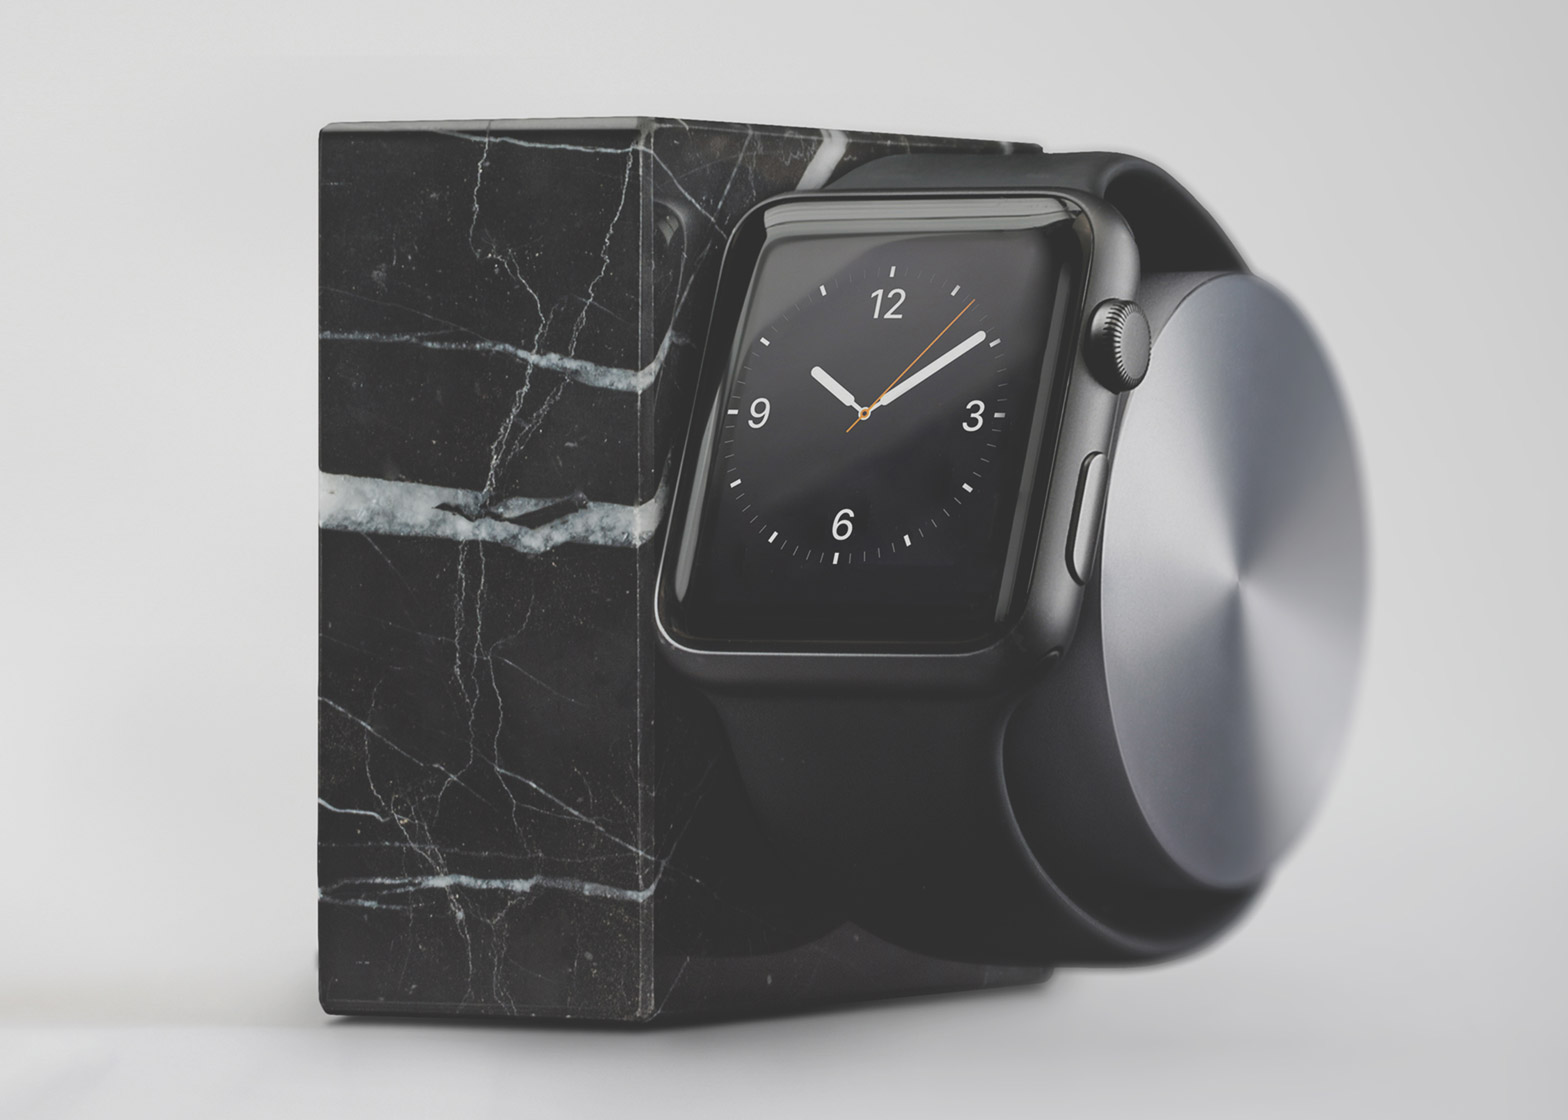 Dock Apple Watch charger by Native Union